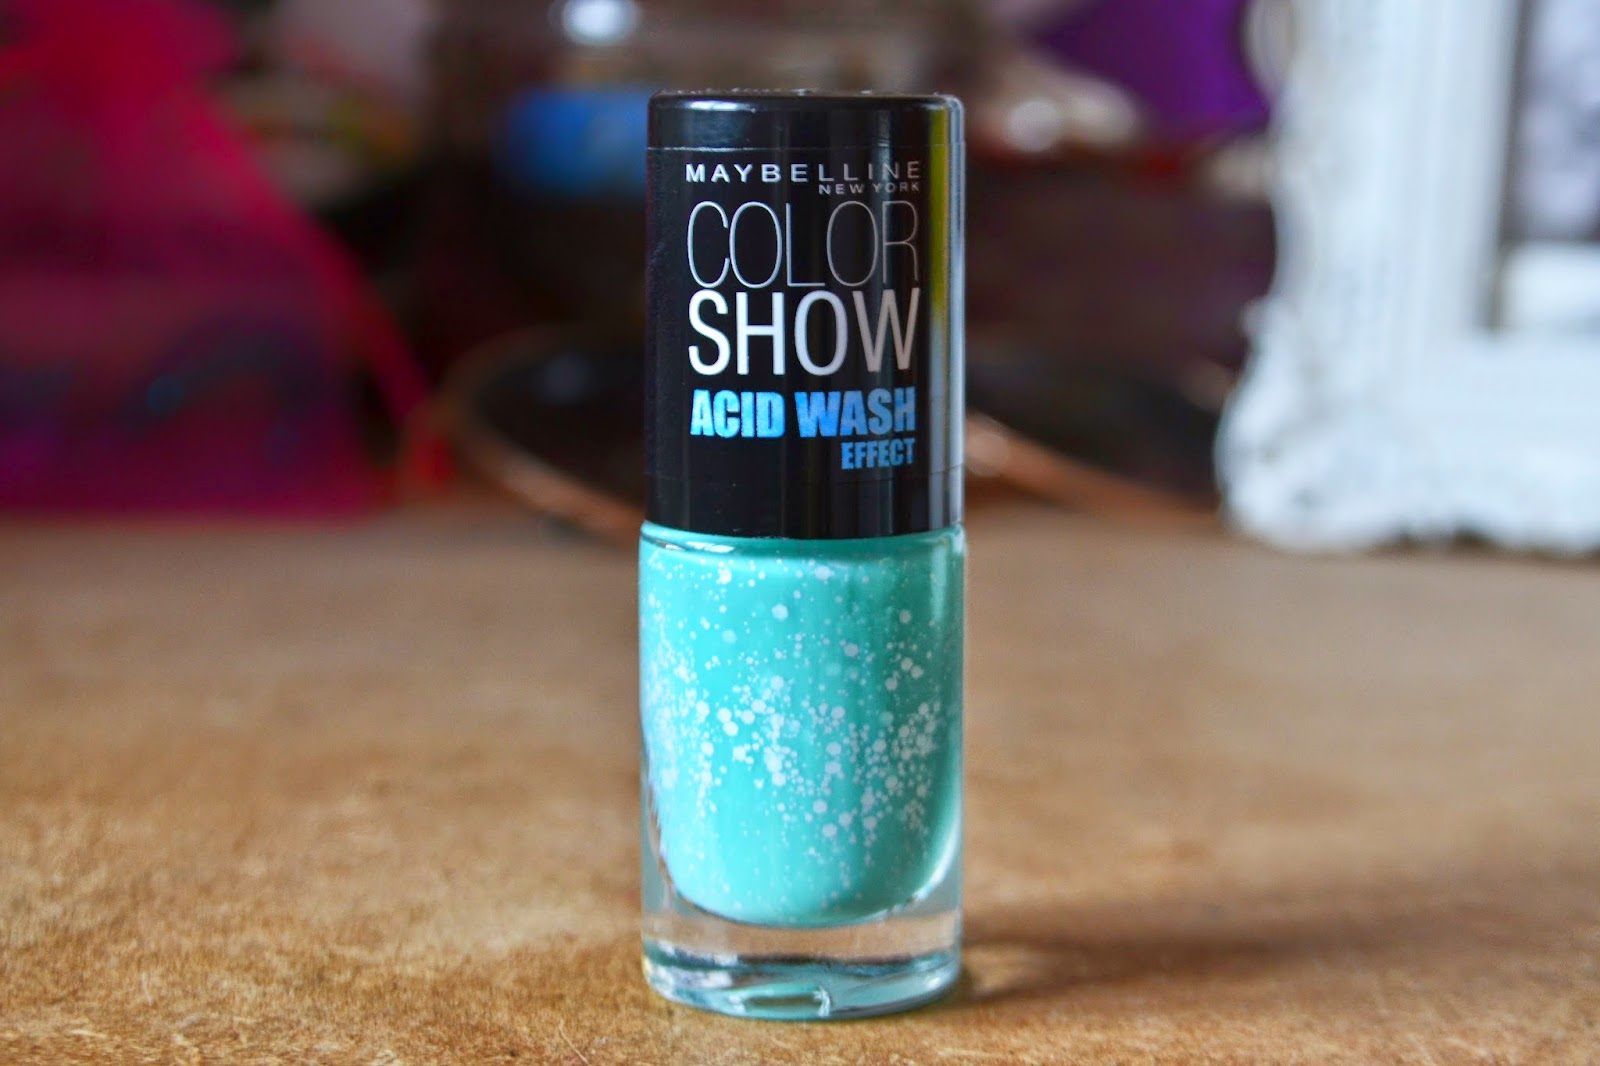 A BOTTLE OF TURQUOISE ACID WASH NAIL VARNISH